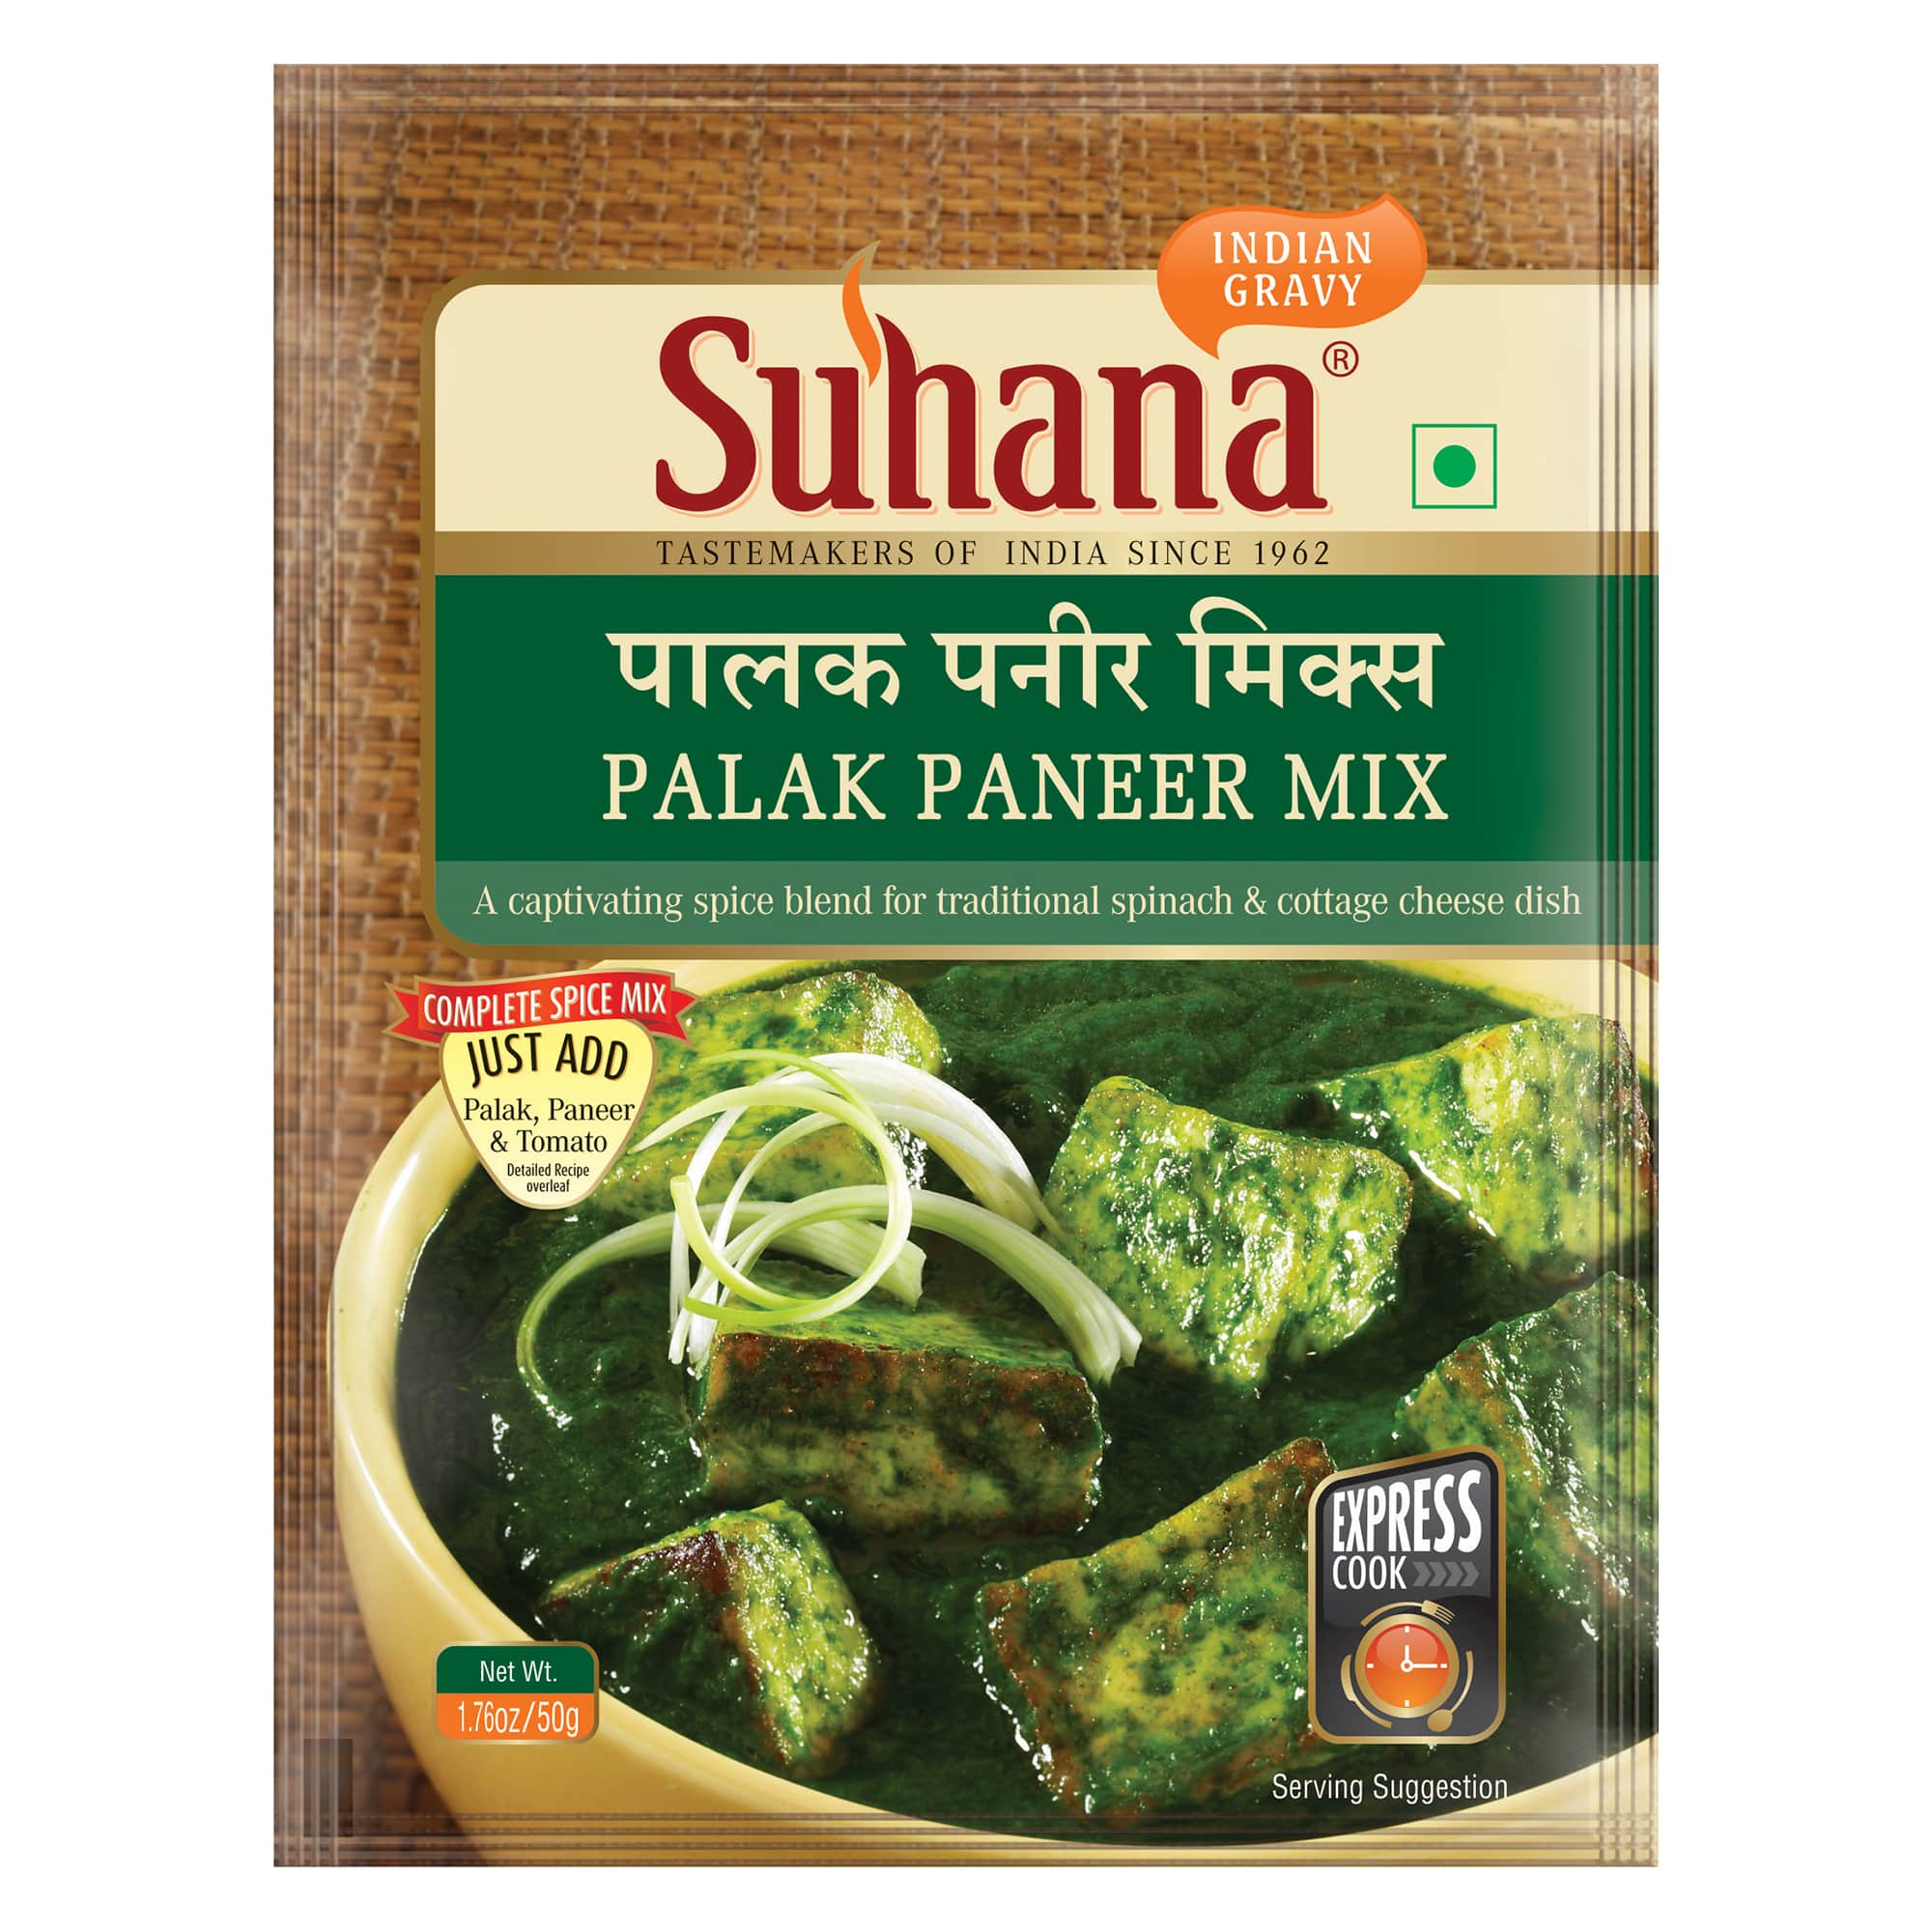 Suhana Palak Paneer Spice Mix 50g Pouch